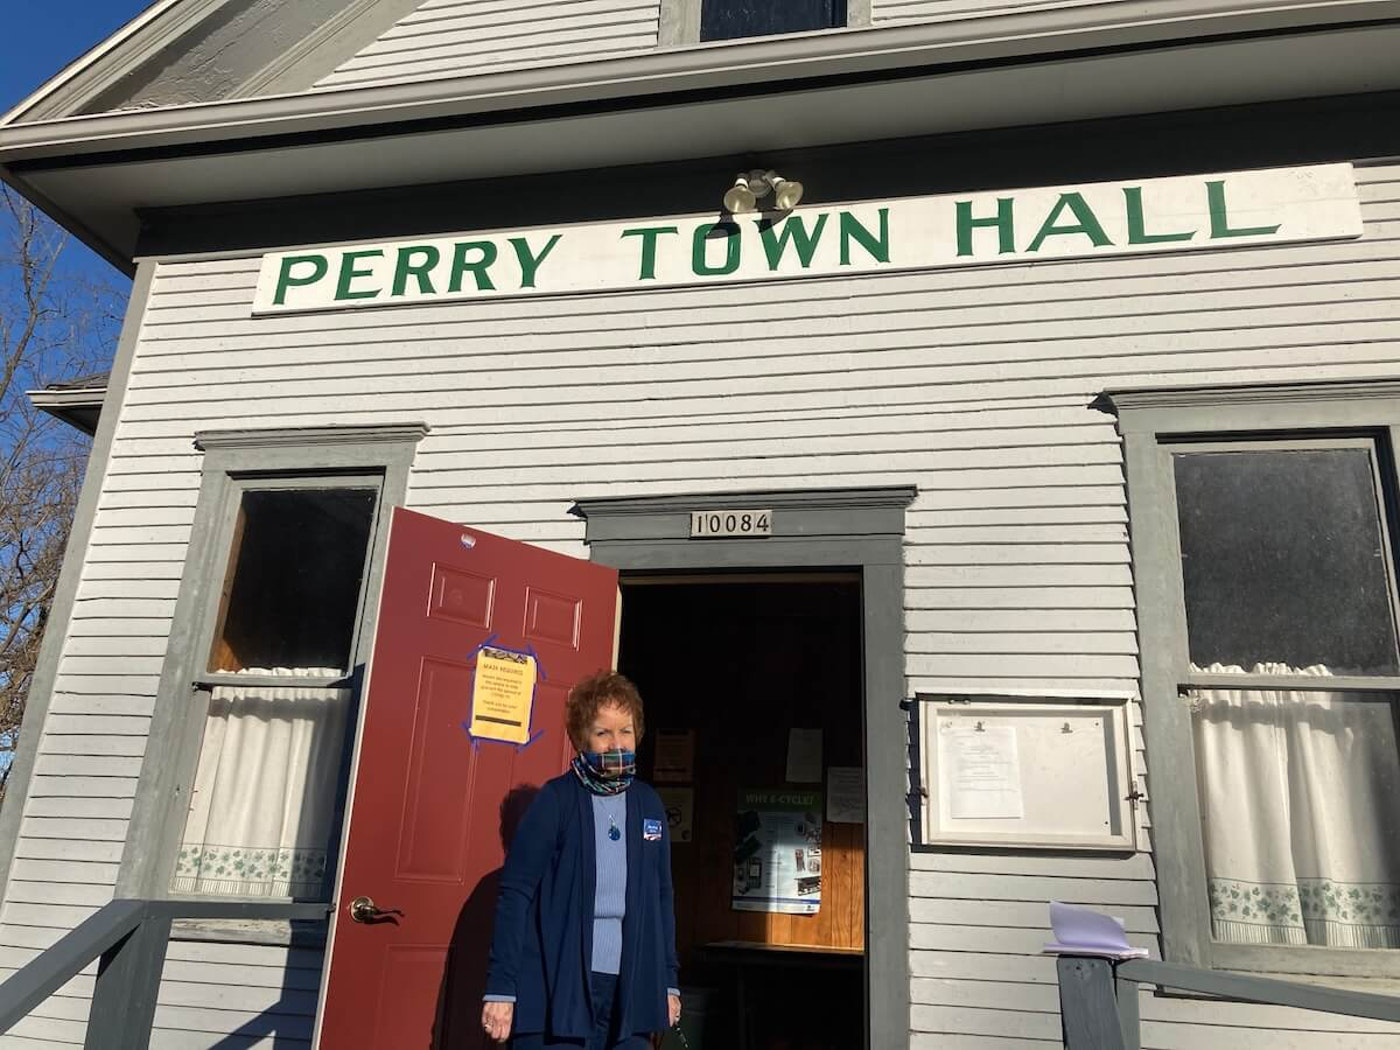 Clerk Mary Price stands outside the 109-year-old Perry Town Hall. Located in a rural corner of Dane County, Wis., its population is 670. (Photo by Susan Lampert Smith)